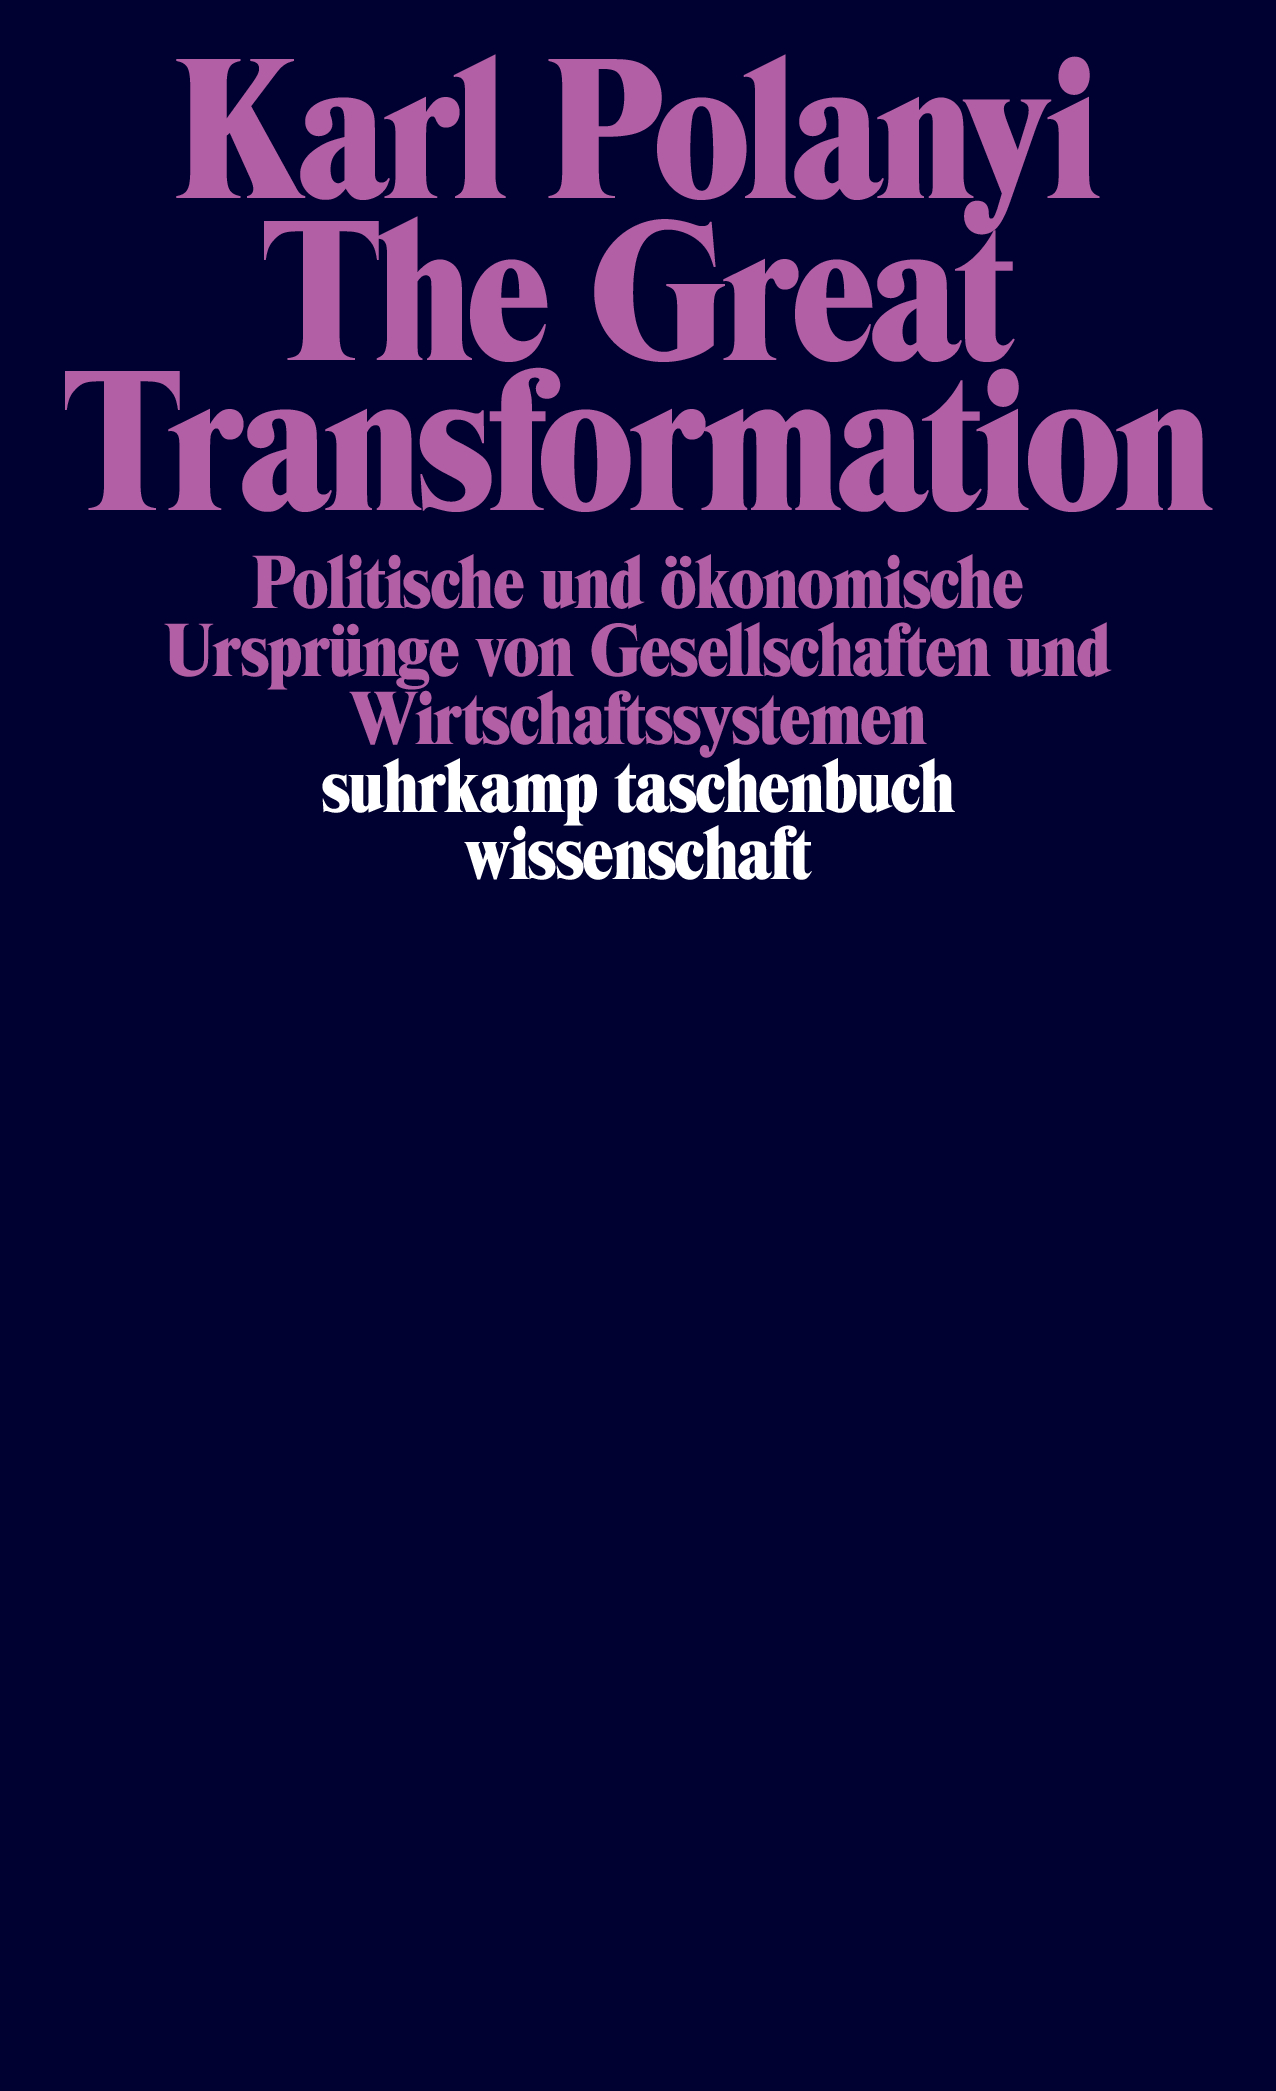 Polanyi, Karl: The Great Transformation, 1973